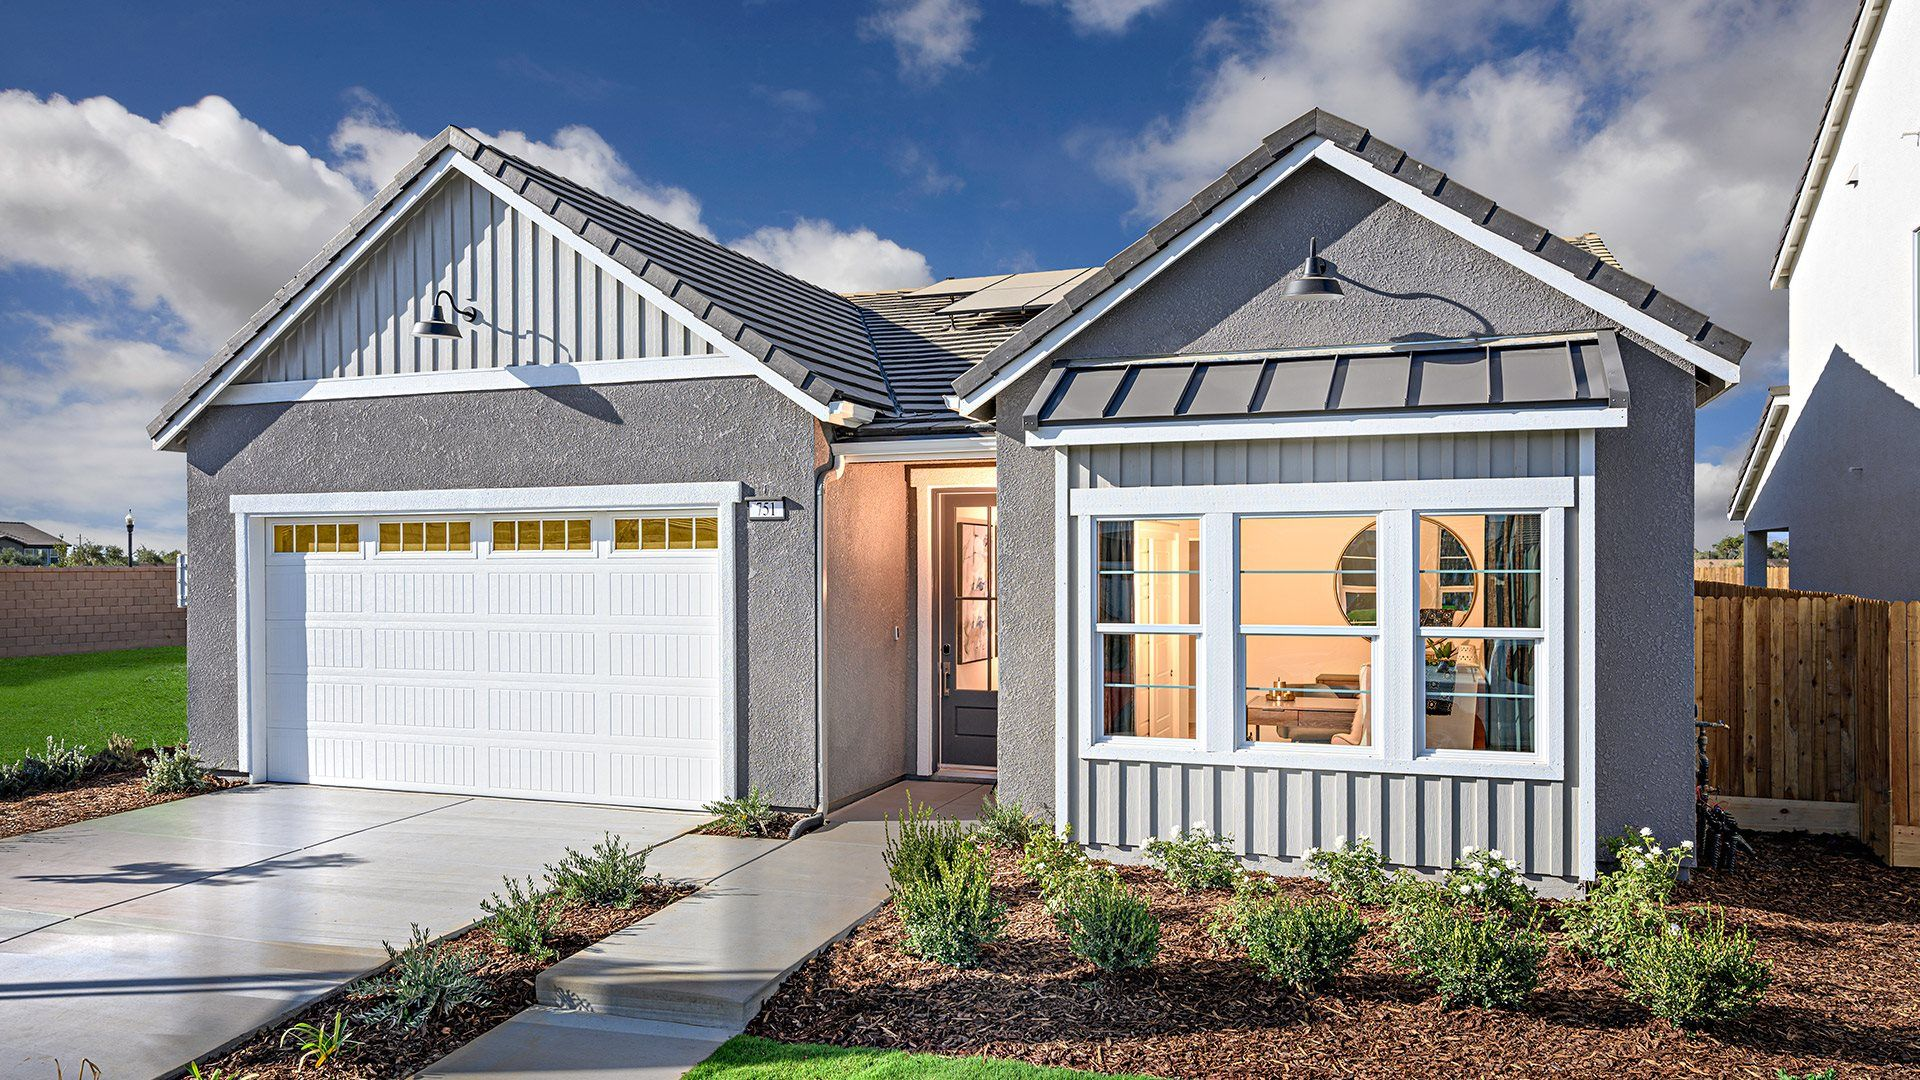 'Riverstone - Coronet Series' by Lennar - Central Valley in Fresno